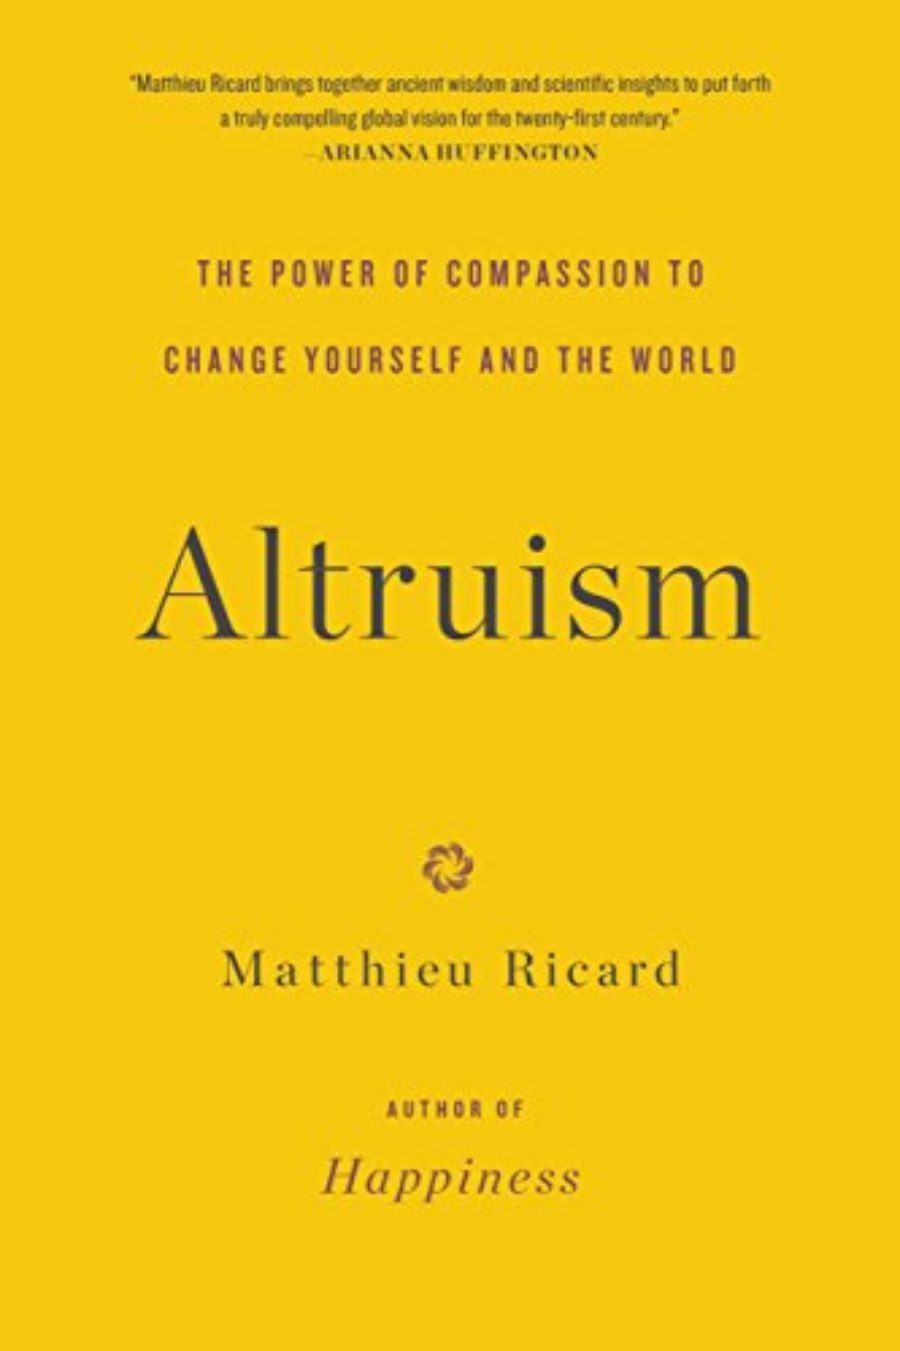 Cover of Altruism: The Power of Compassion to Change Yourself and the World